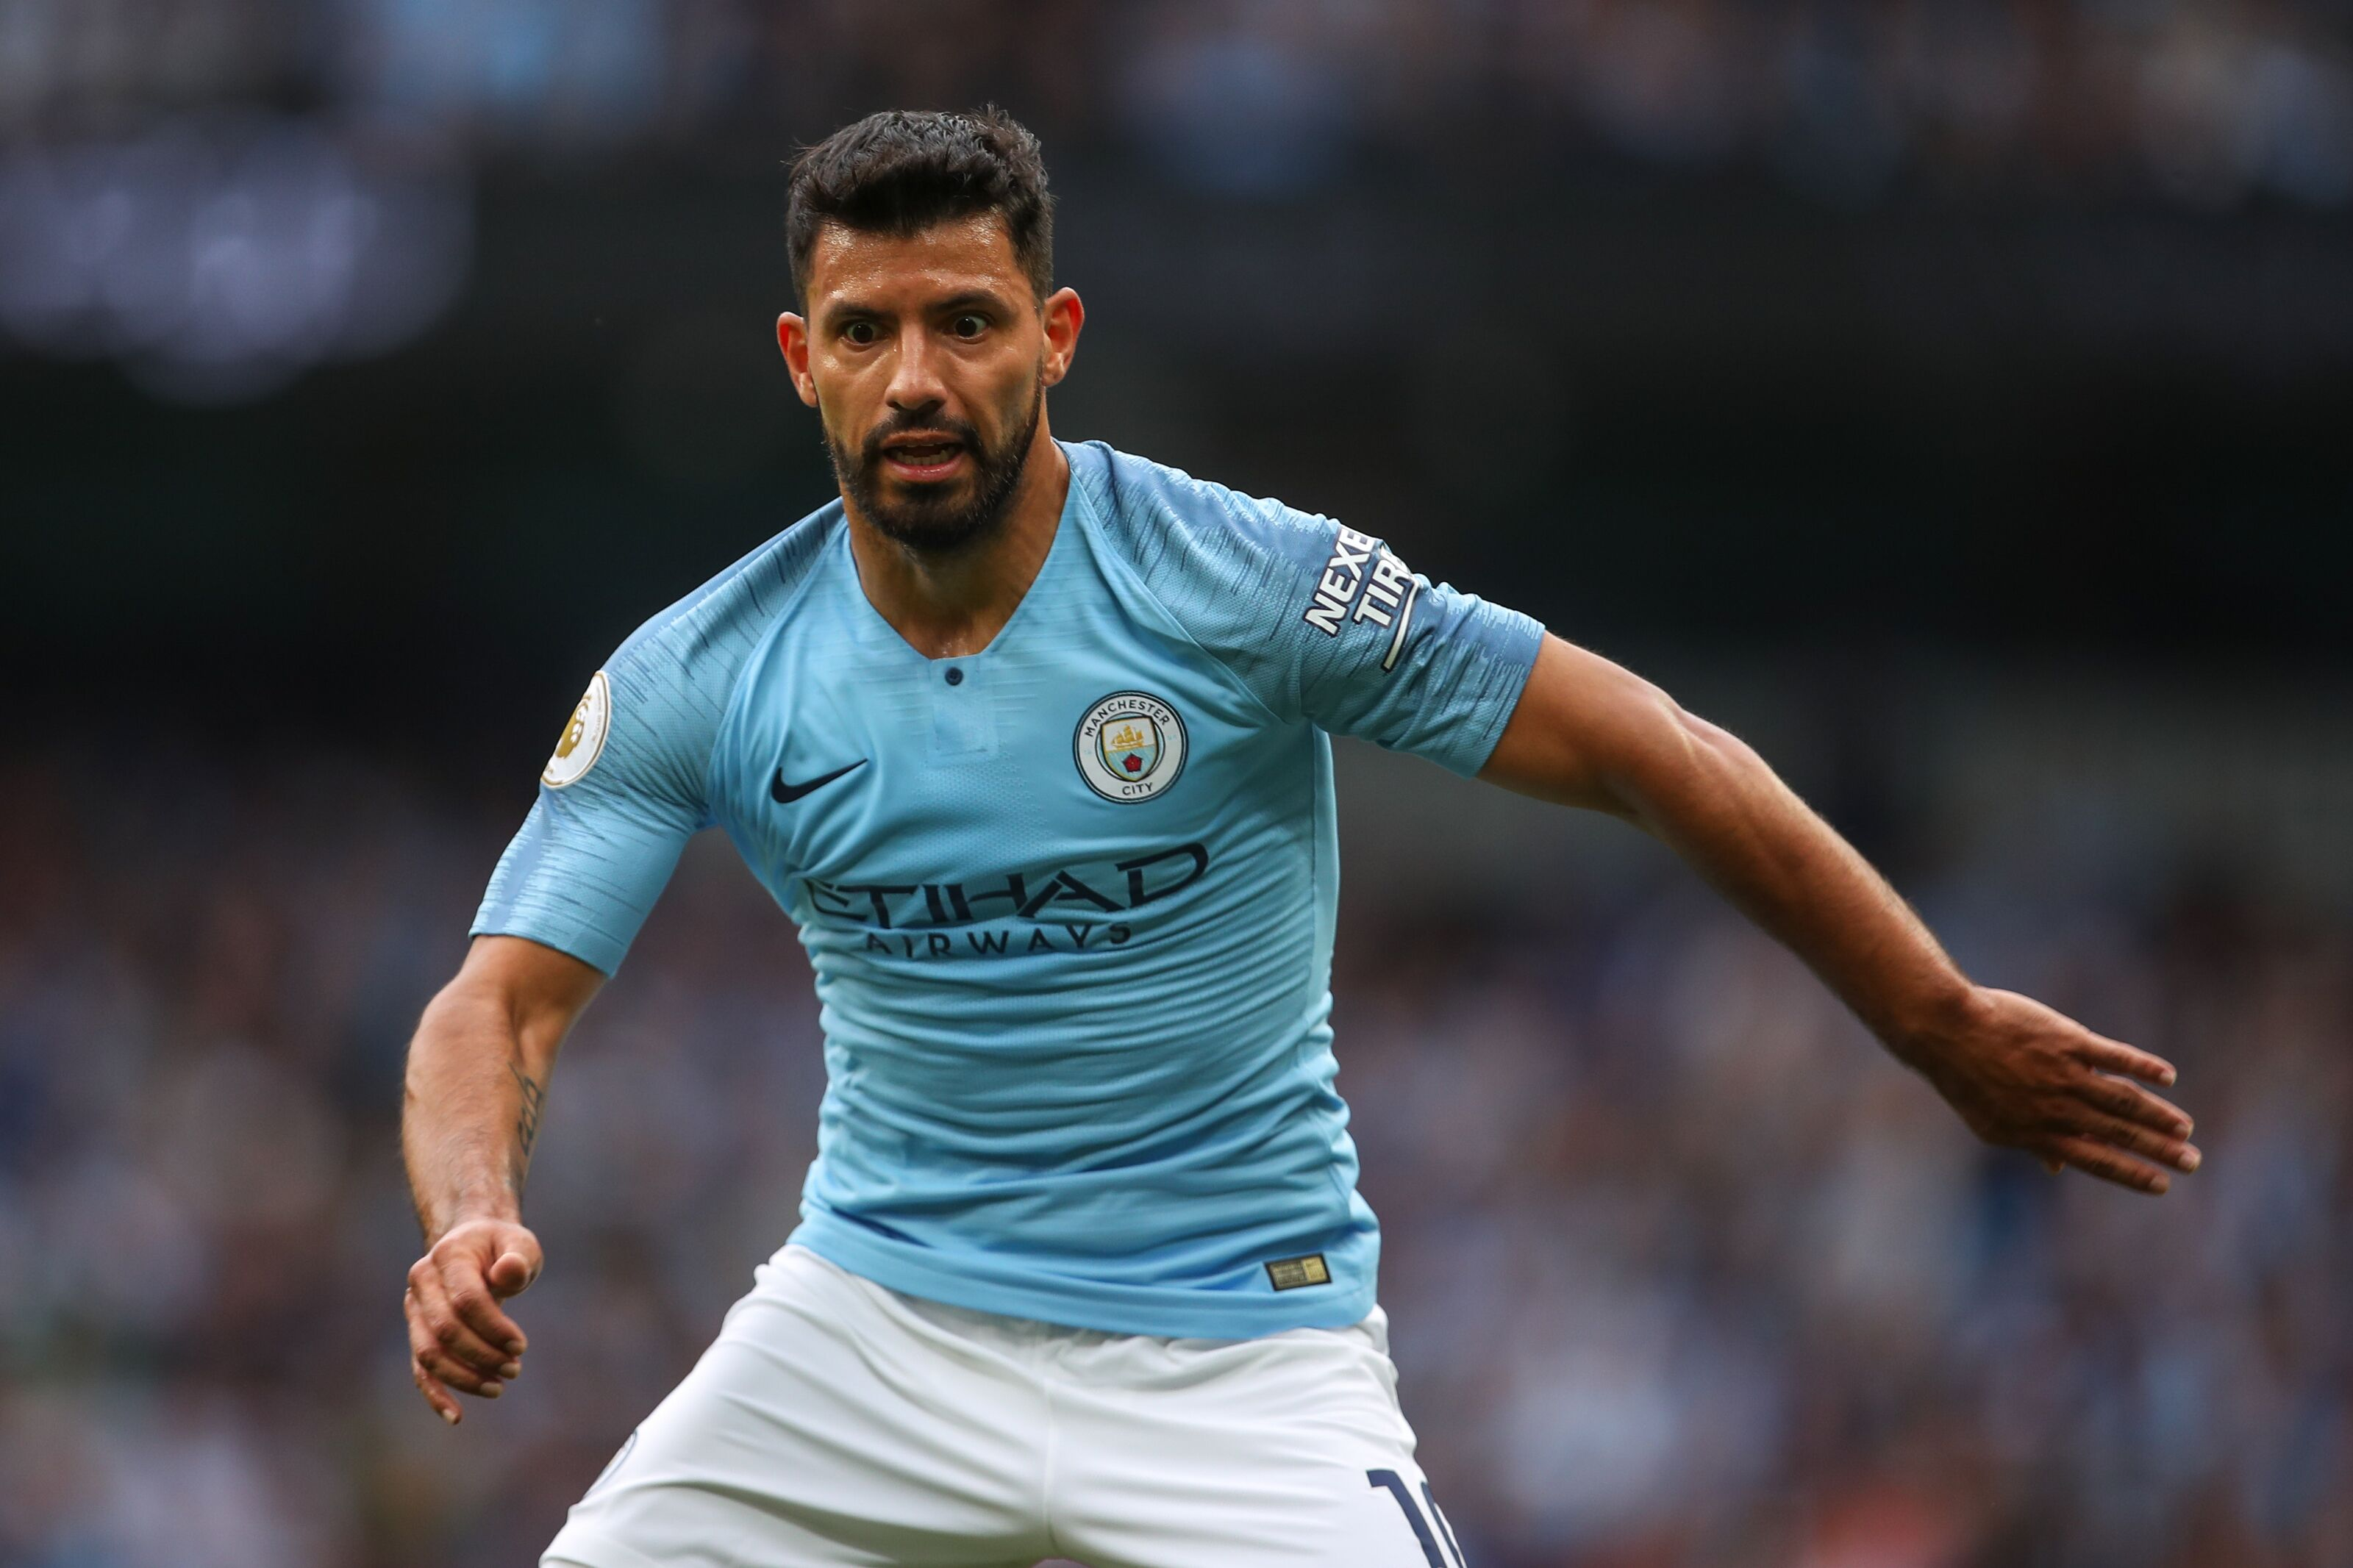 MANCHESTER, ENGLAND - AUGUST 19: Sergio Aguero of Manchester City during the Premier League match between Manchester City and Huddersfield Town at Etihad Stadium on August 19, 2018 in Manchester, United Kingdom. (Photo by Robbie Jay Barratt - AMA/Getty Images)